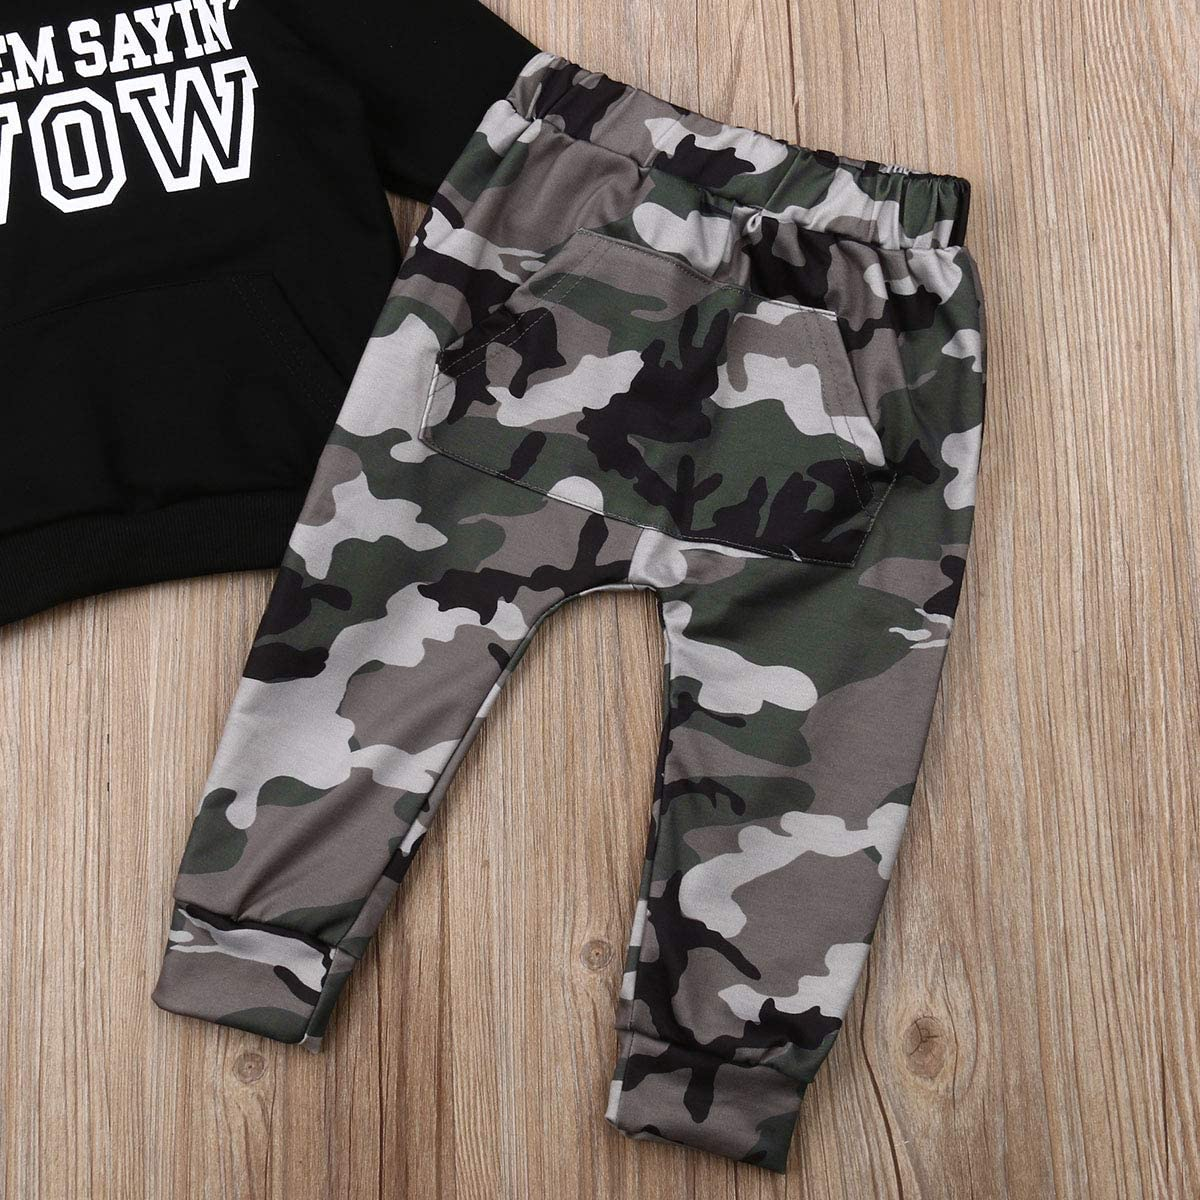 Kaipiclos 2Pc Toddler Baby Boy Sweatshirt Camouflage Pants Suit Hooded Long Sleeve Hip Hop Tops Fall Outfits Clothes Set